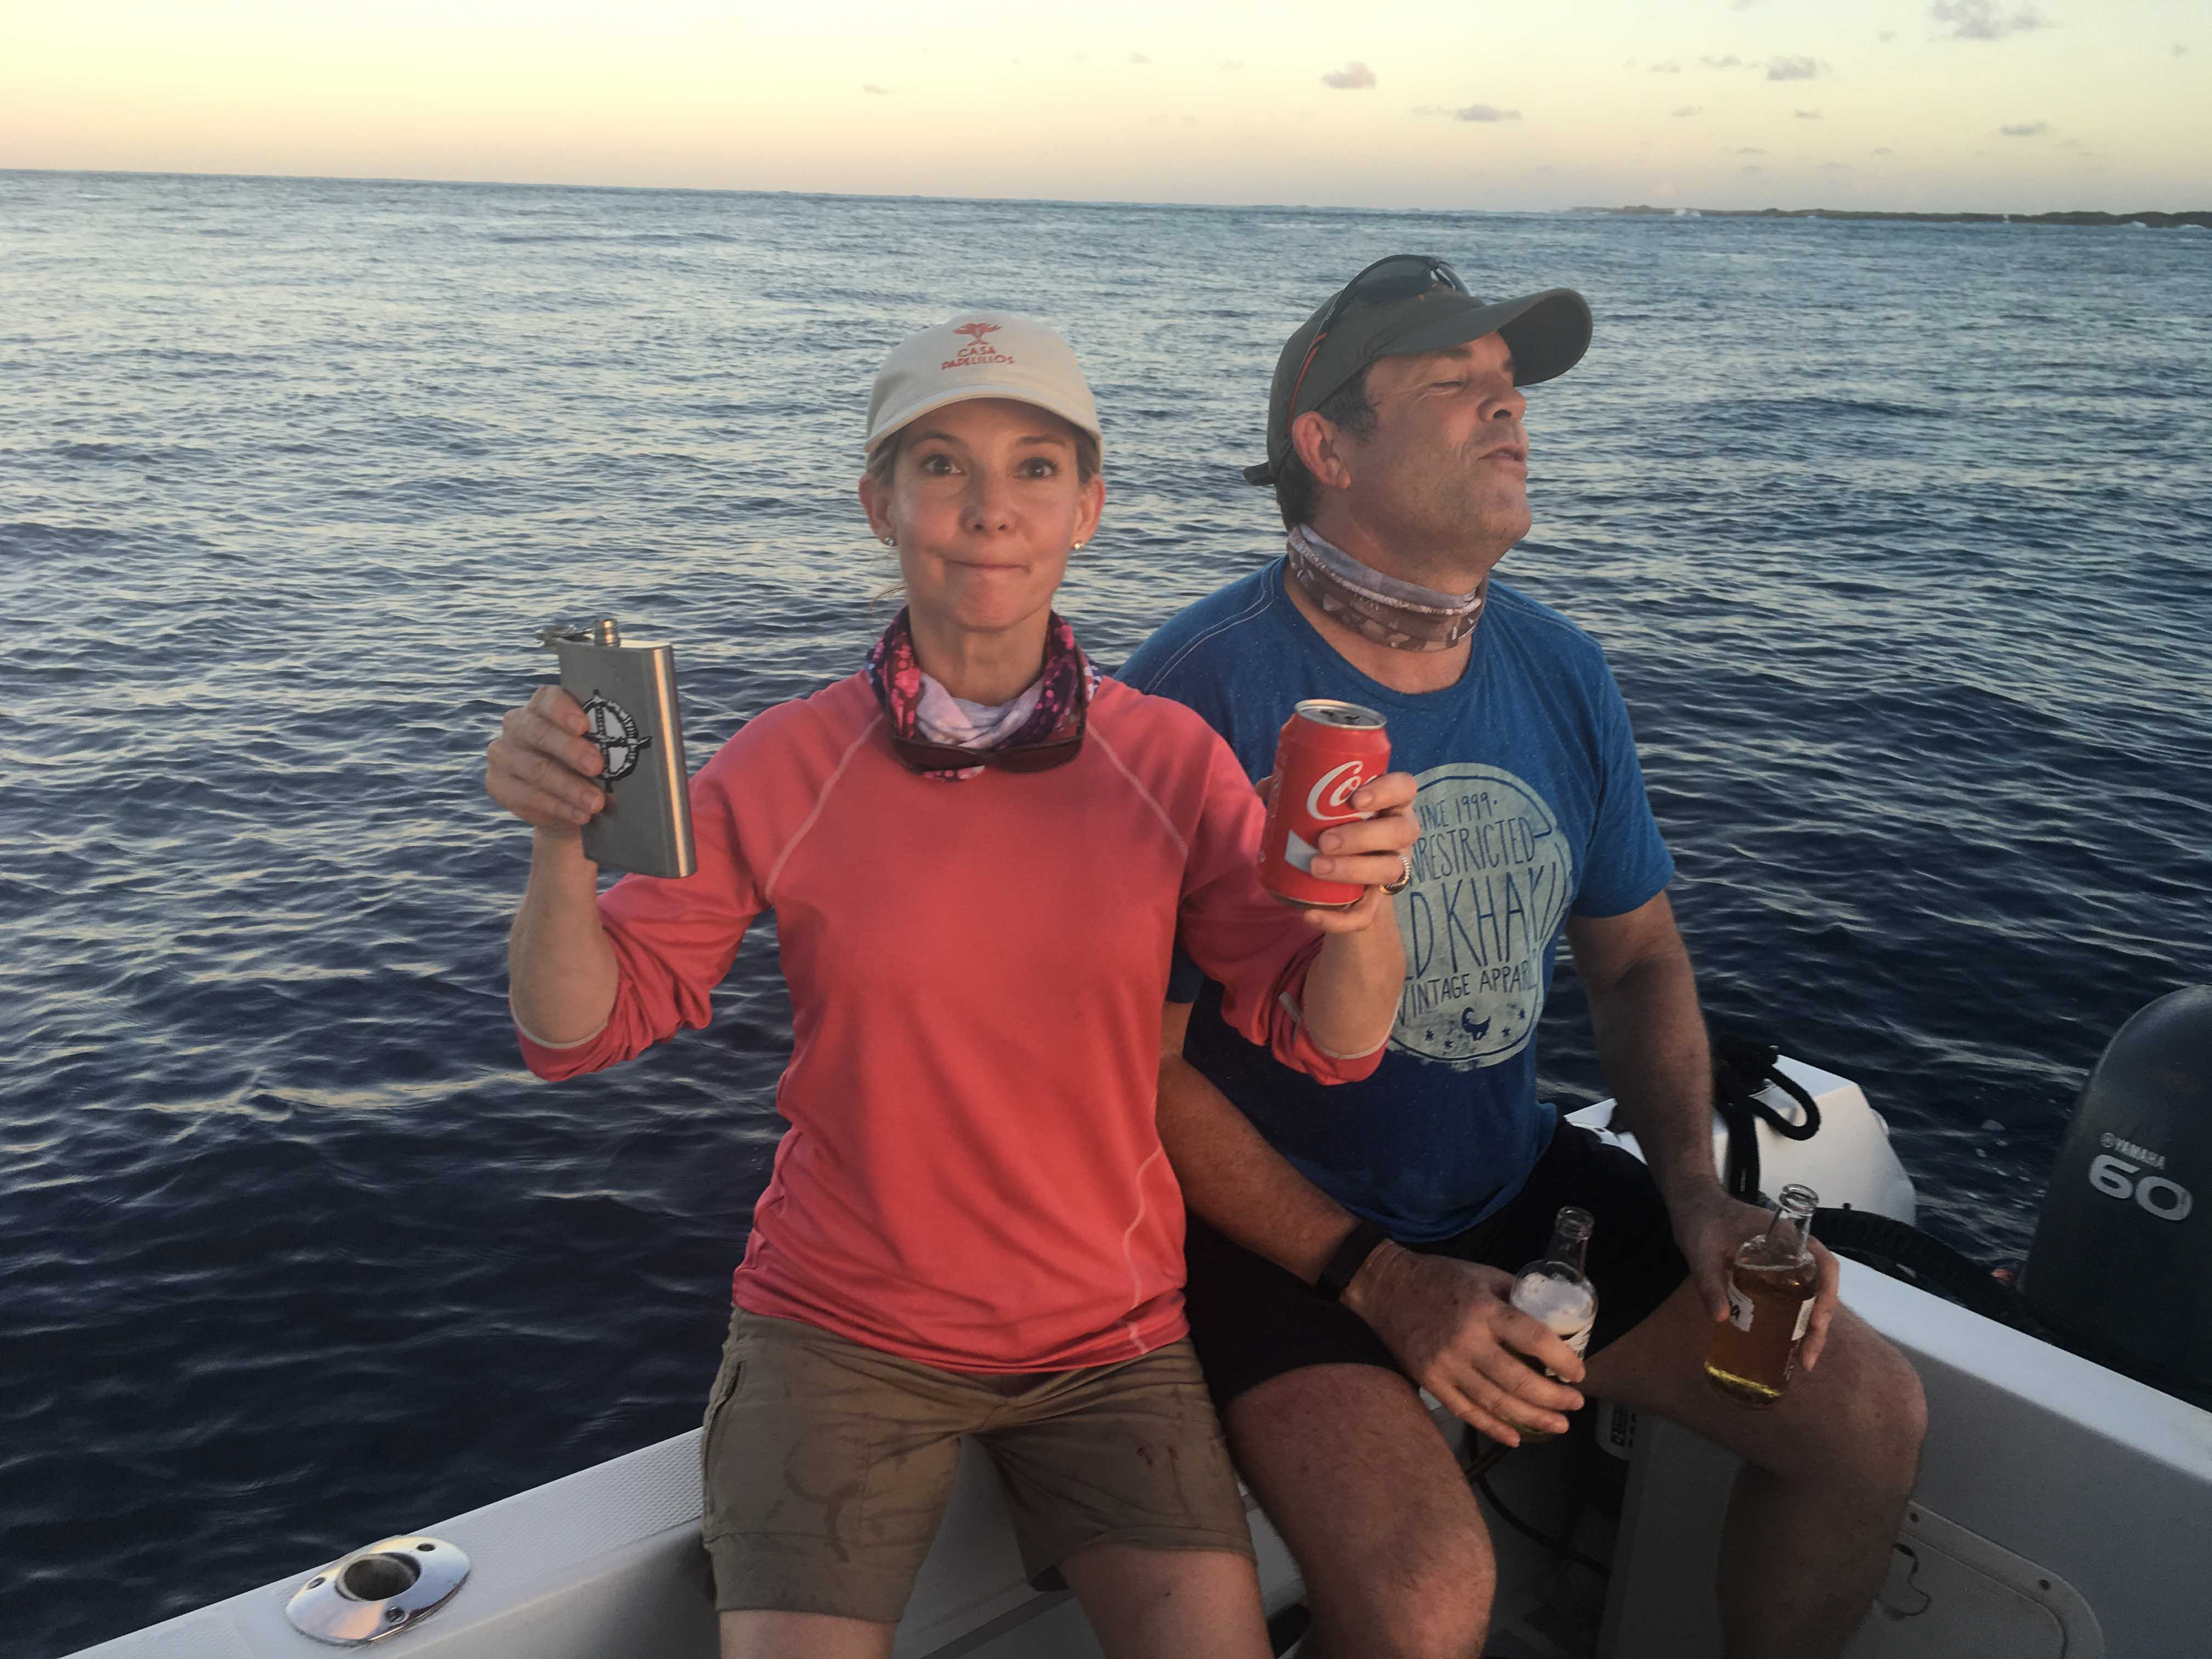 Eugenia completes the ritual Speed Ball - tequila and coke, mixed in your mouth - to celebrate the fishing success.